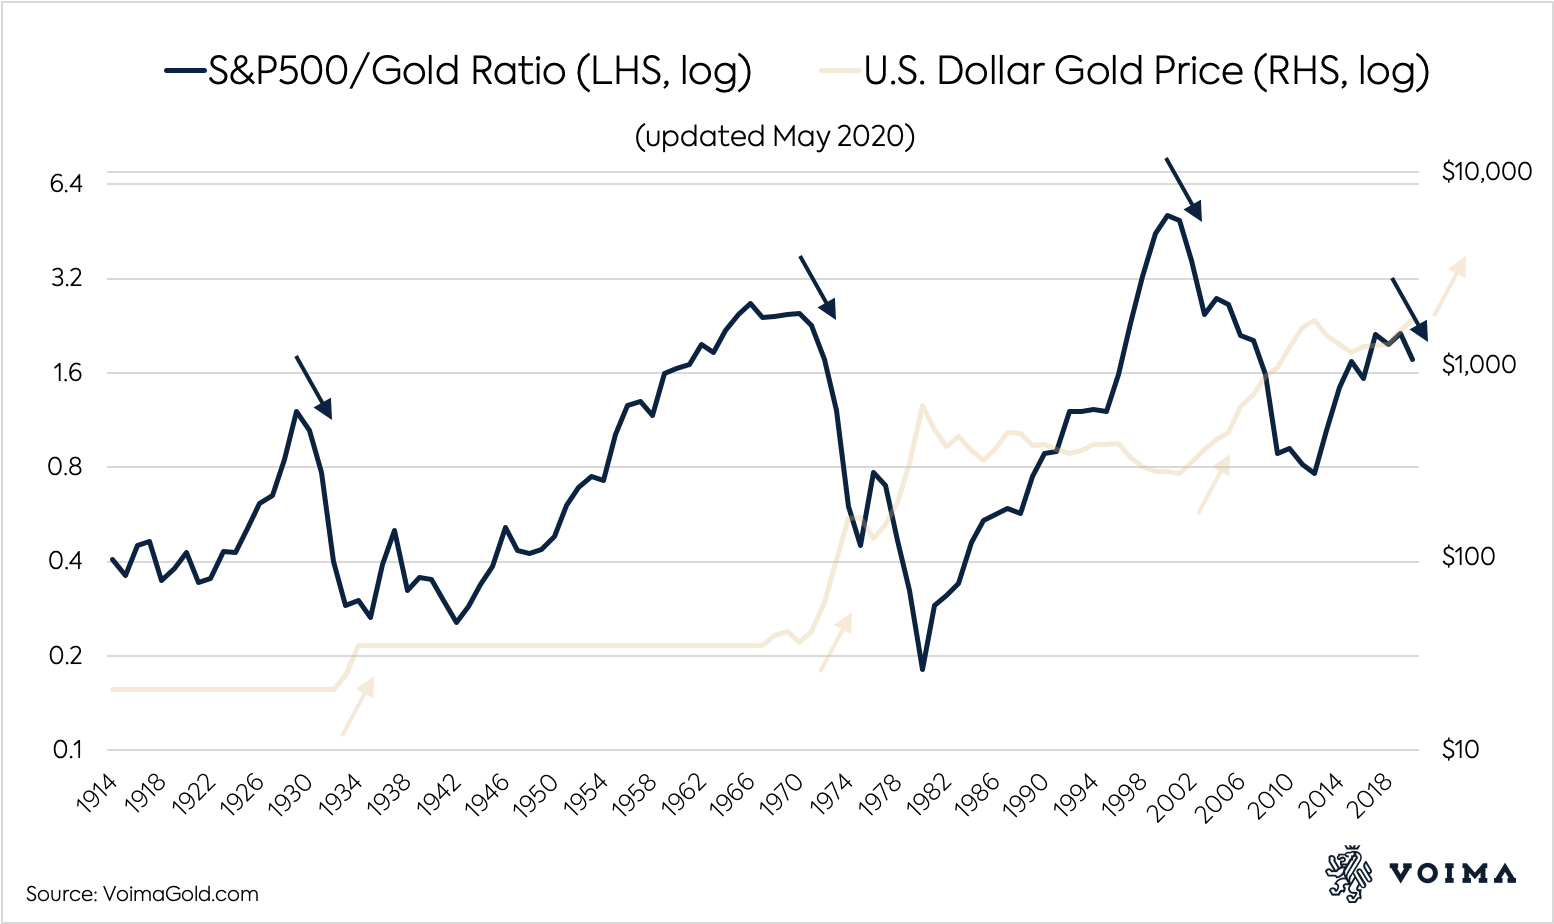 Jan Nieuwenhuijs : Why Gold, and Why Now